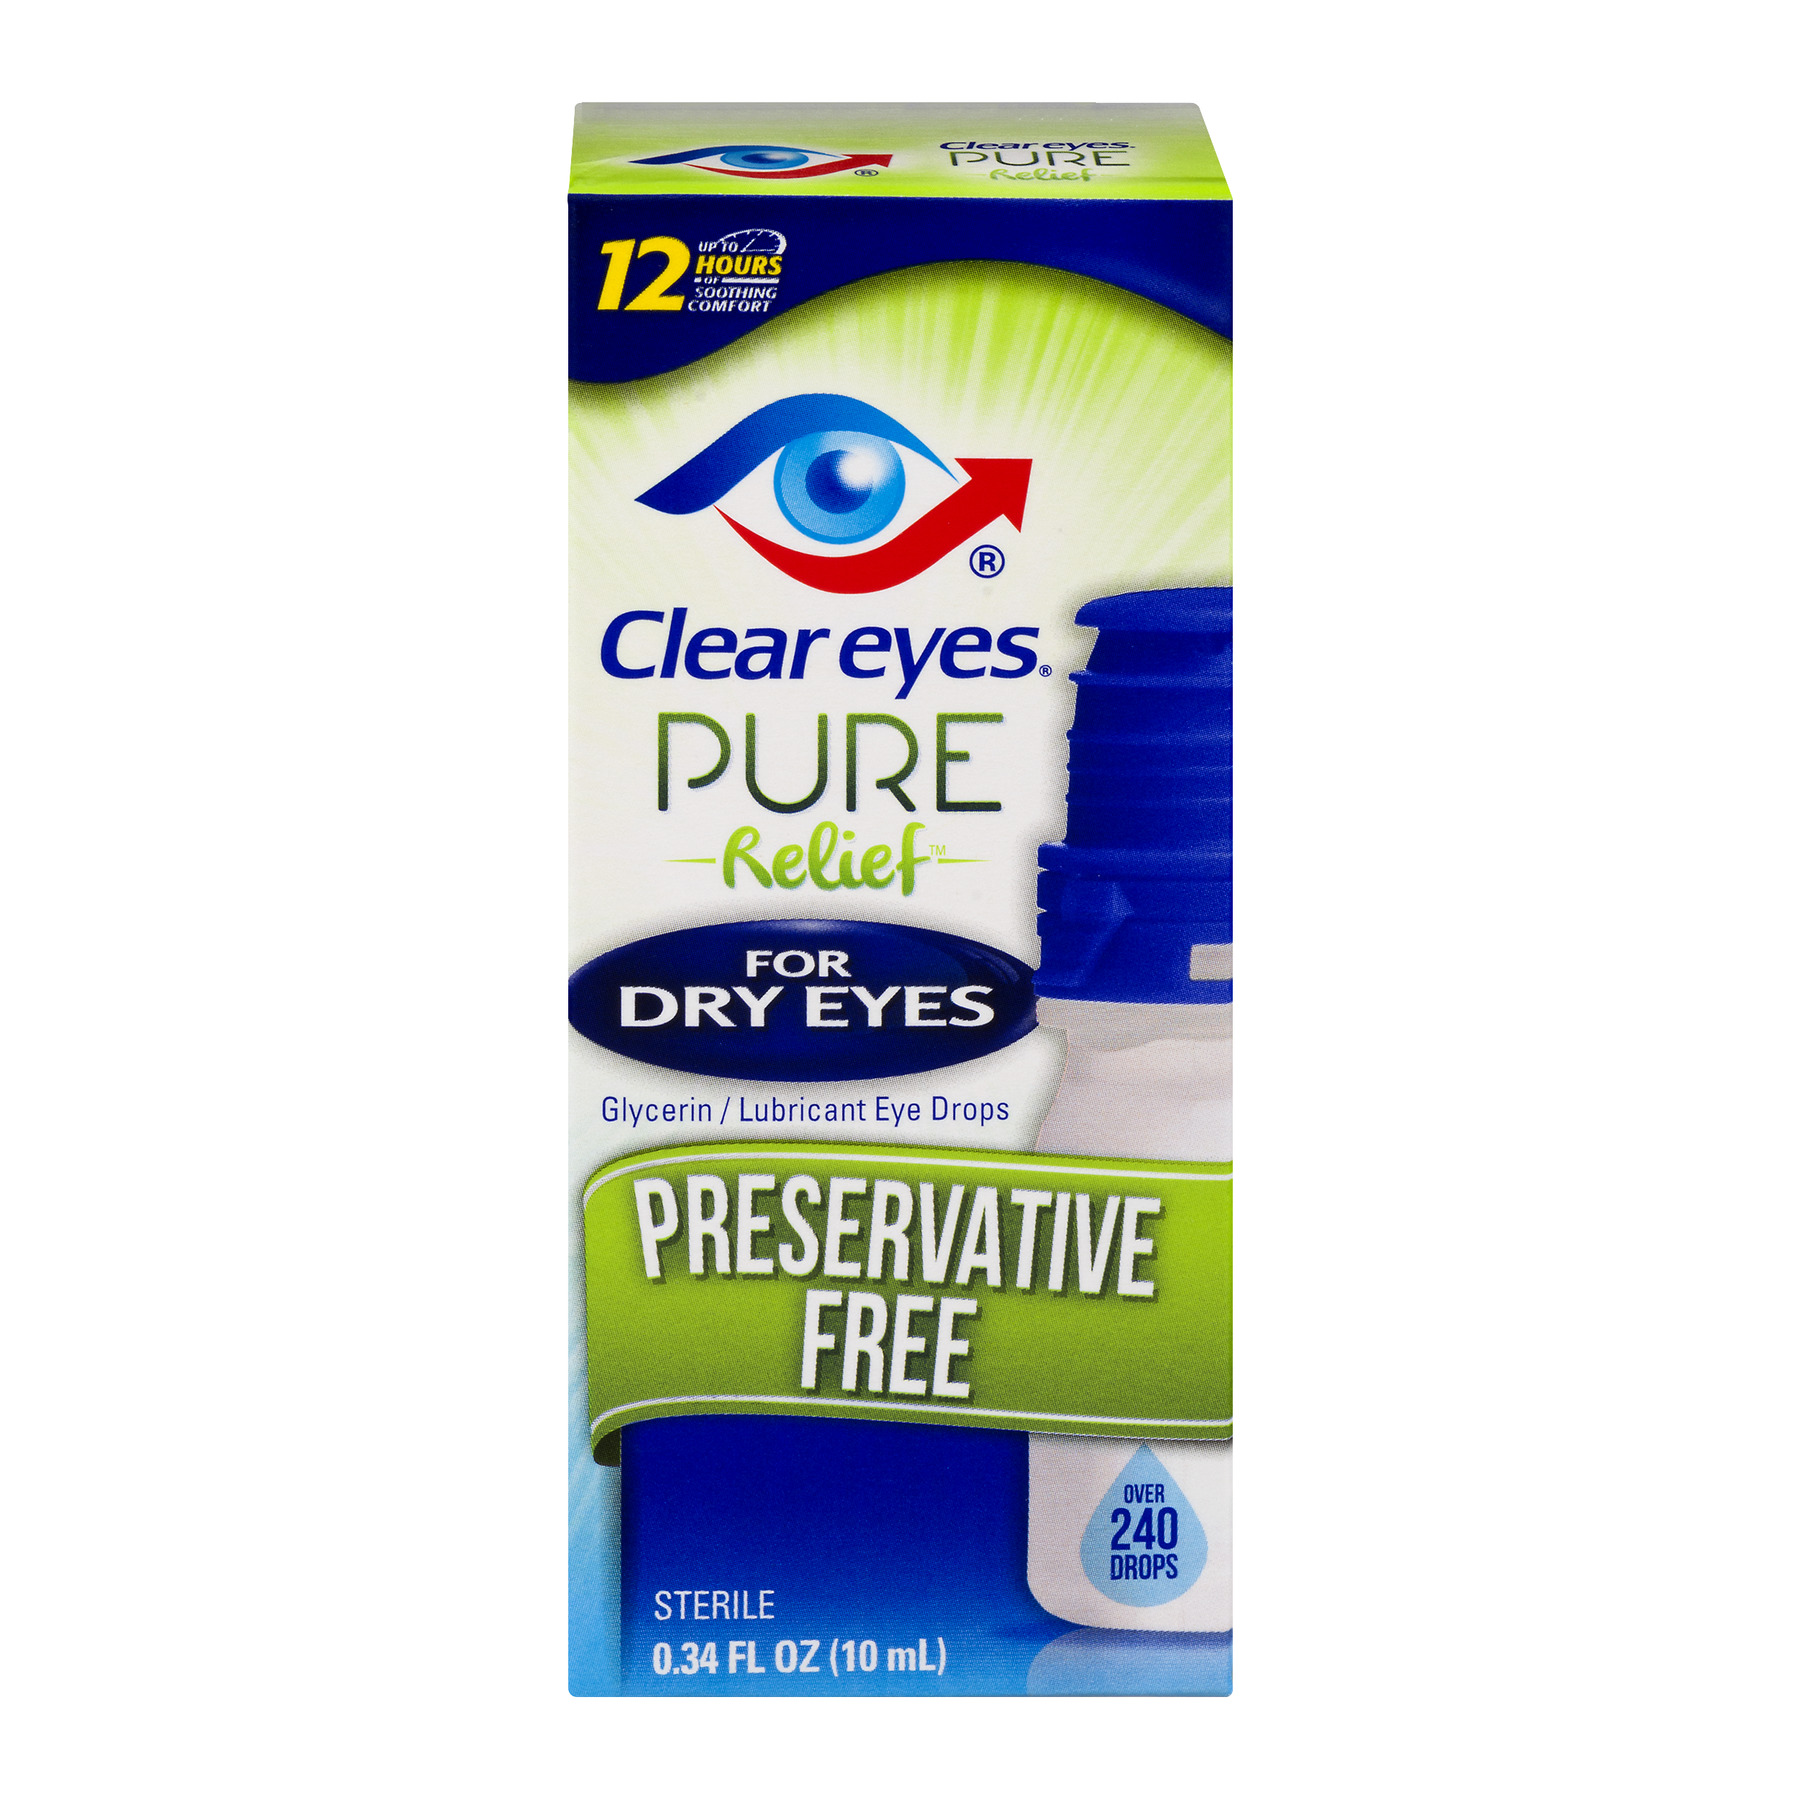 Clear Eyes Pure Relief for Dry Eyes Eye Drops, 0.3 fl oz